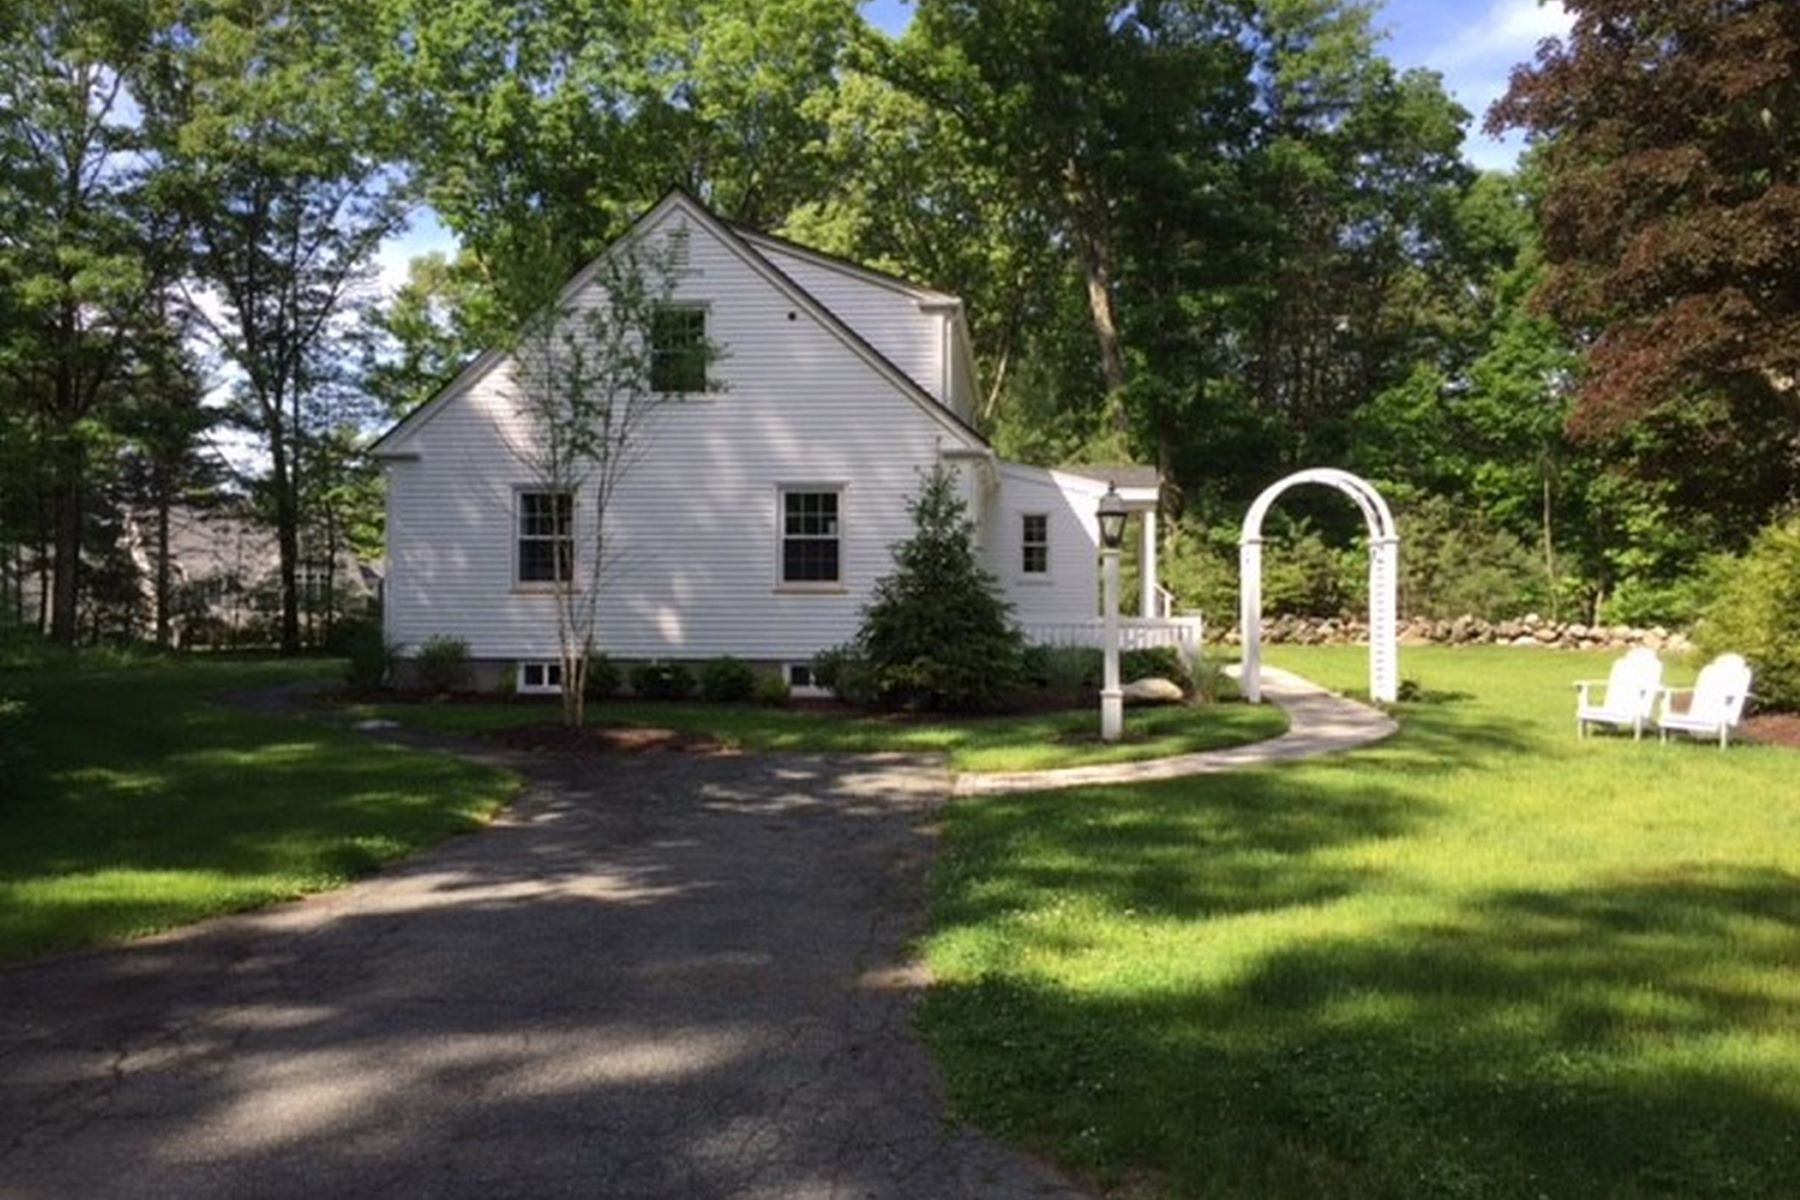 Other Residential for Rent at 943 Lowell Road, Concord 943 Lowell Rd Concord, Massachusetts 01742 United States